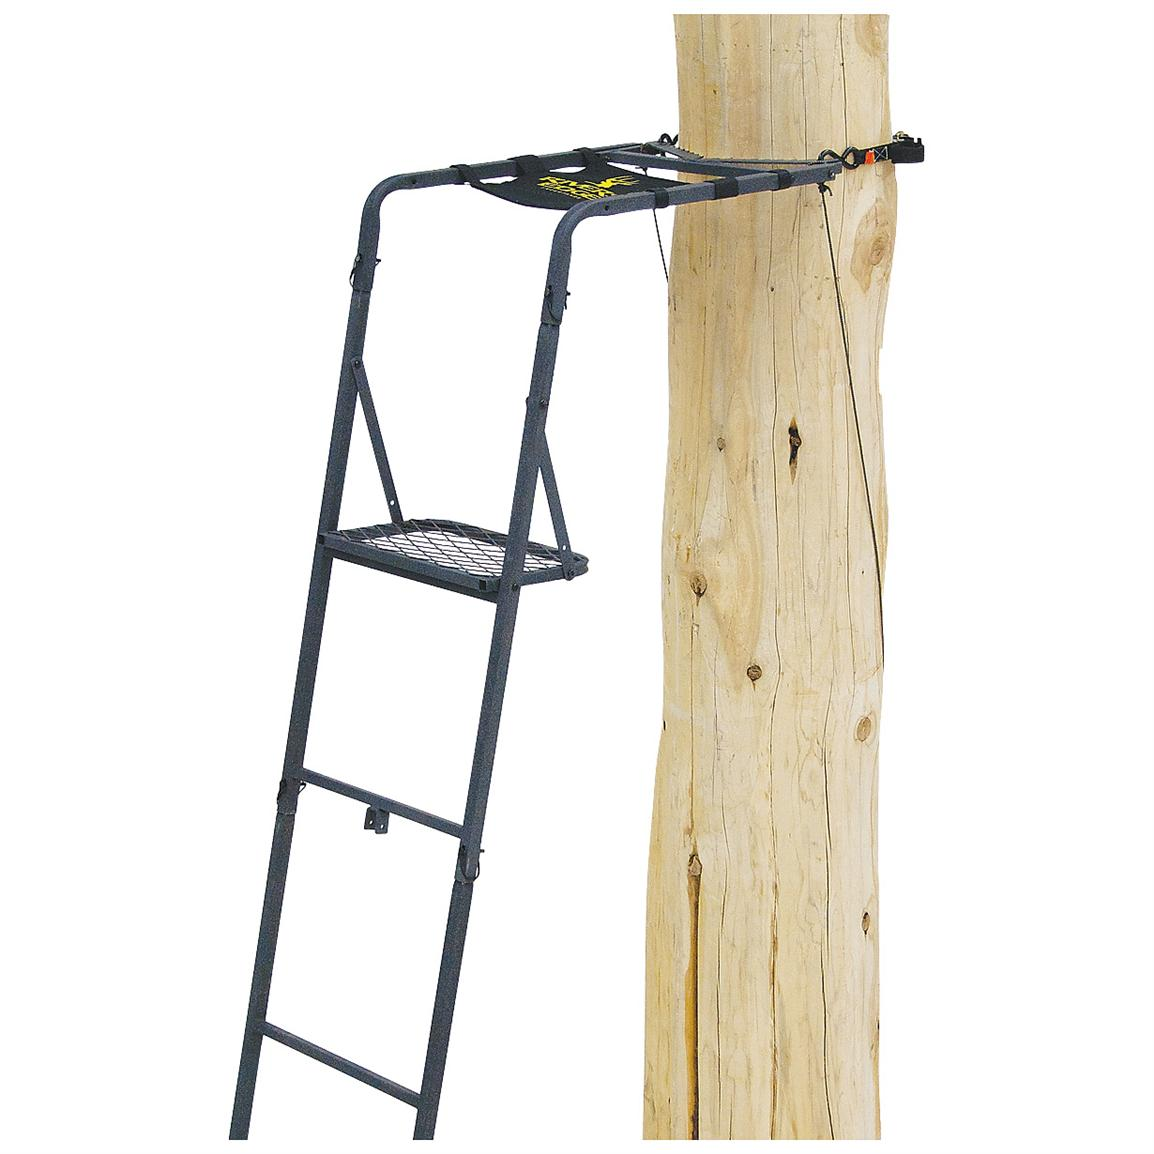 Rivers Edge® 13 foot Pack-n-Stack™ Ladder Tree Stand